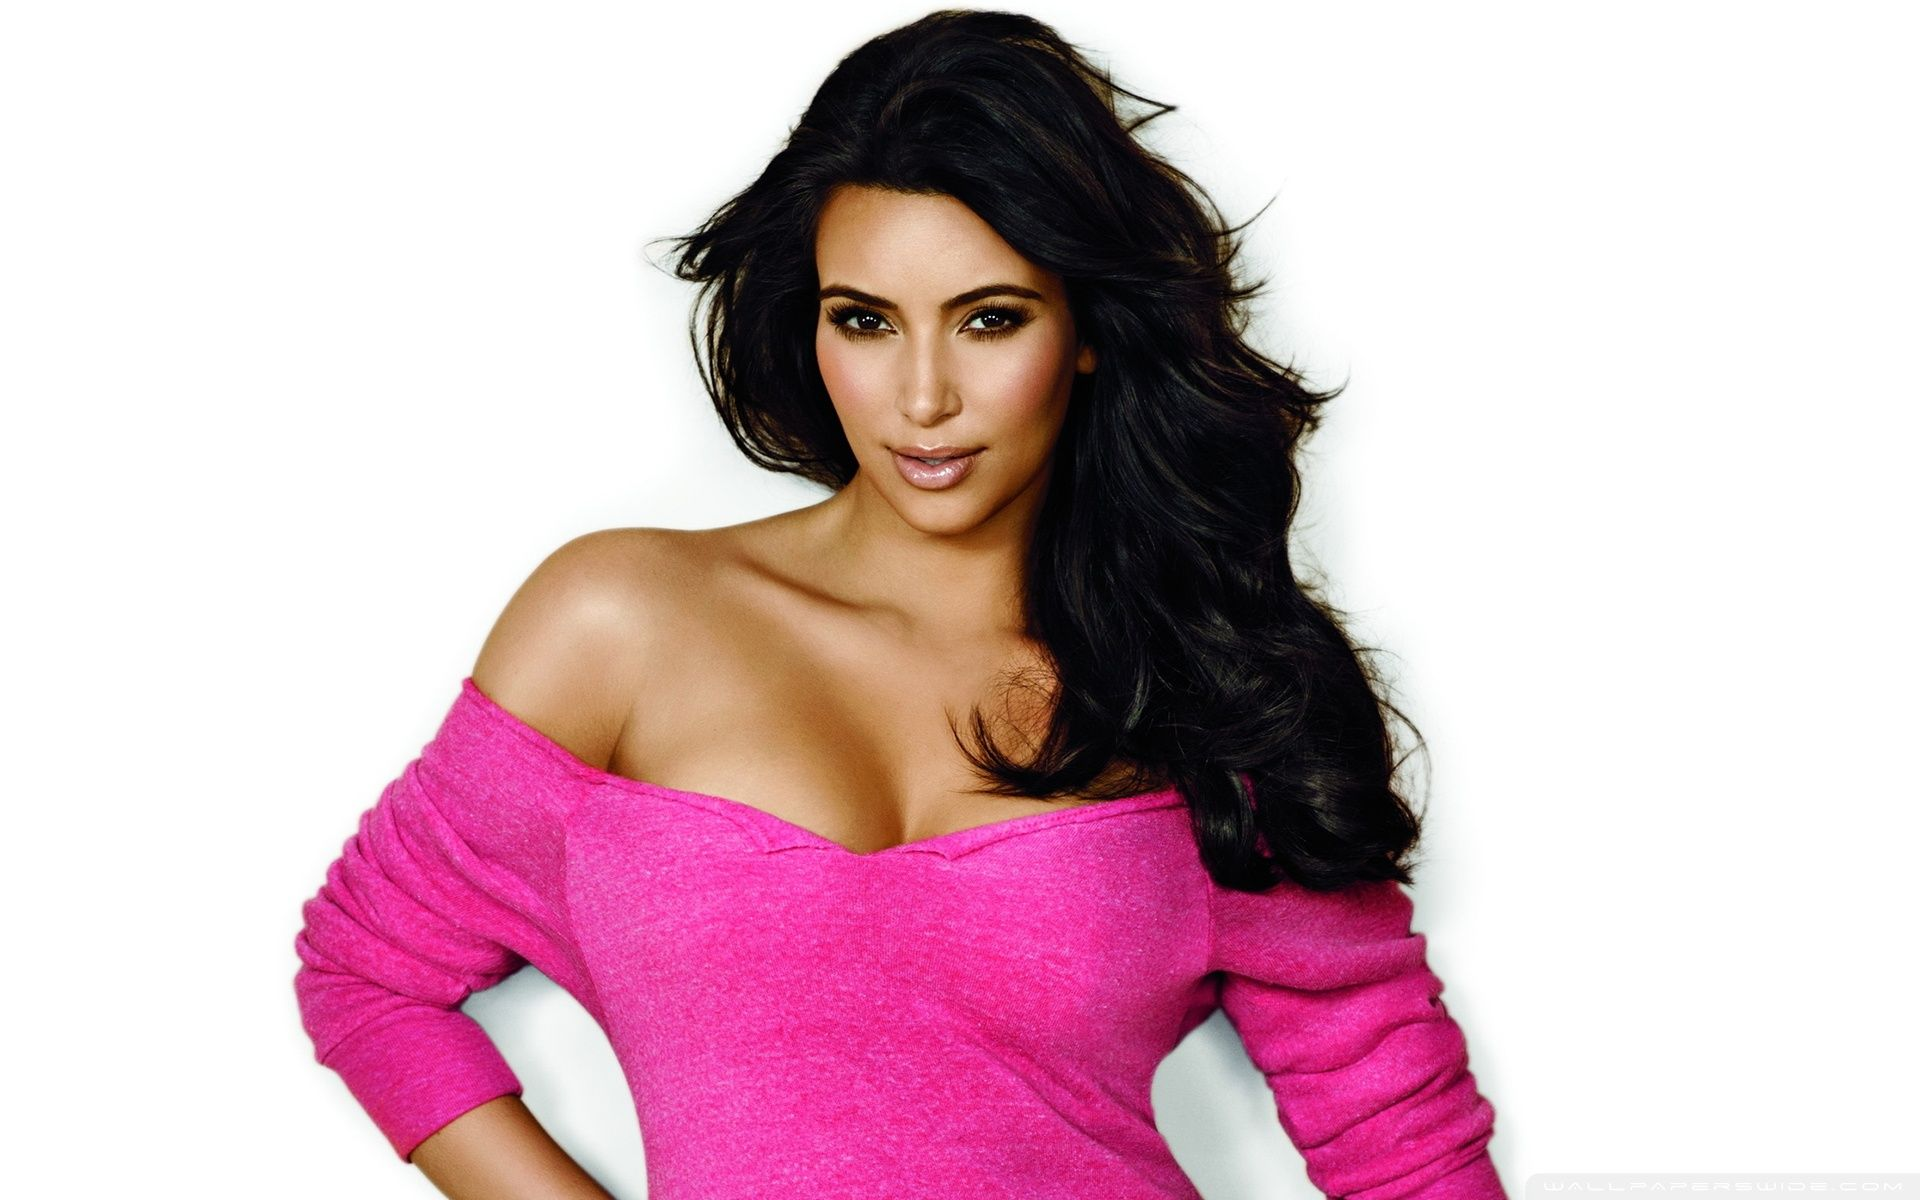 Desktop Kim Kardashian Hd Pics With Cardeshan Wallpaper Download ...